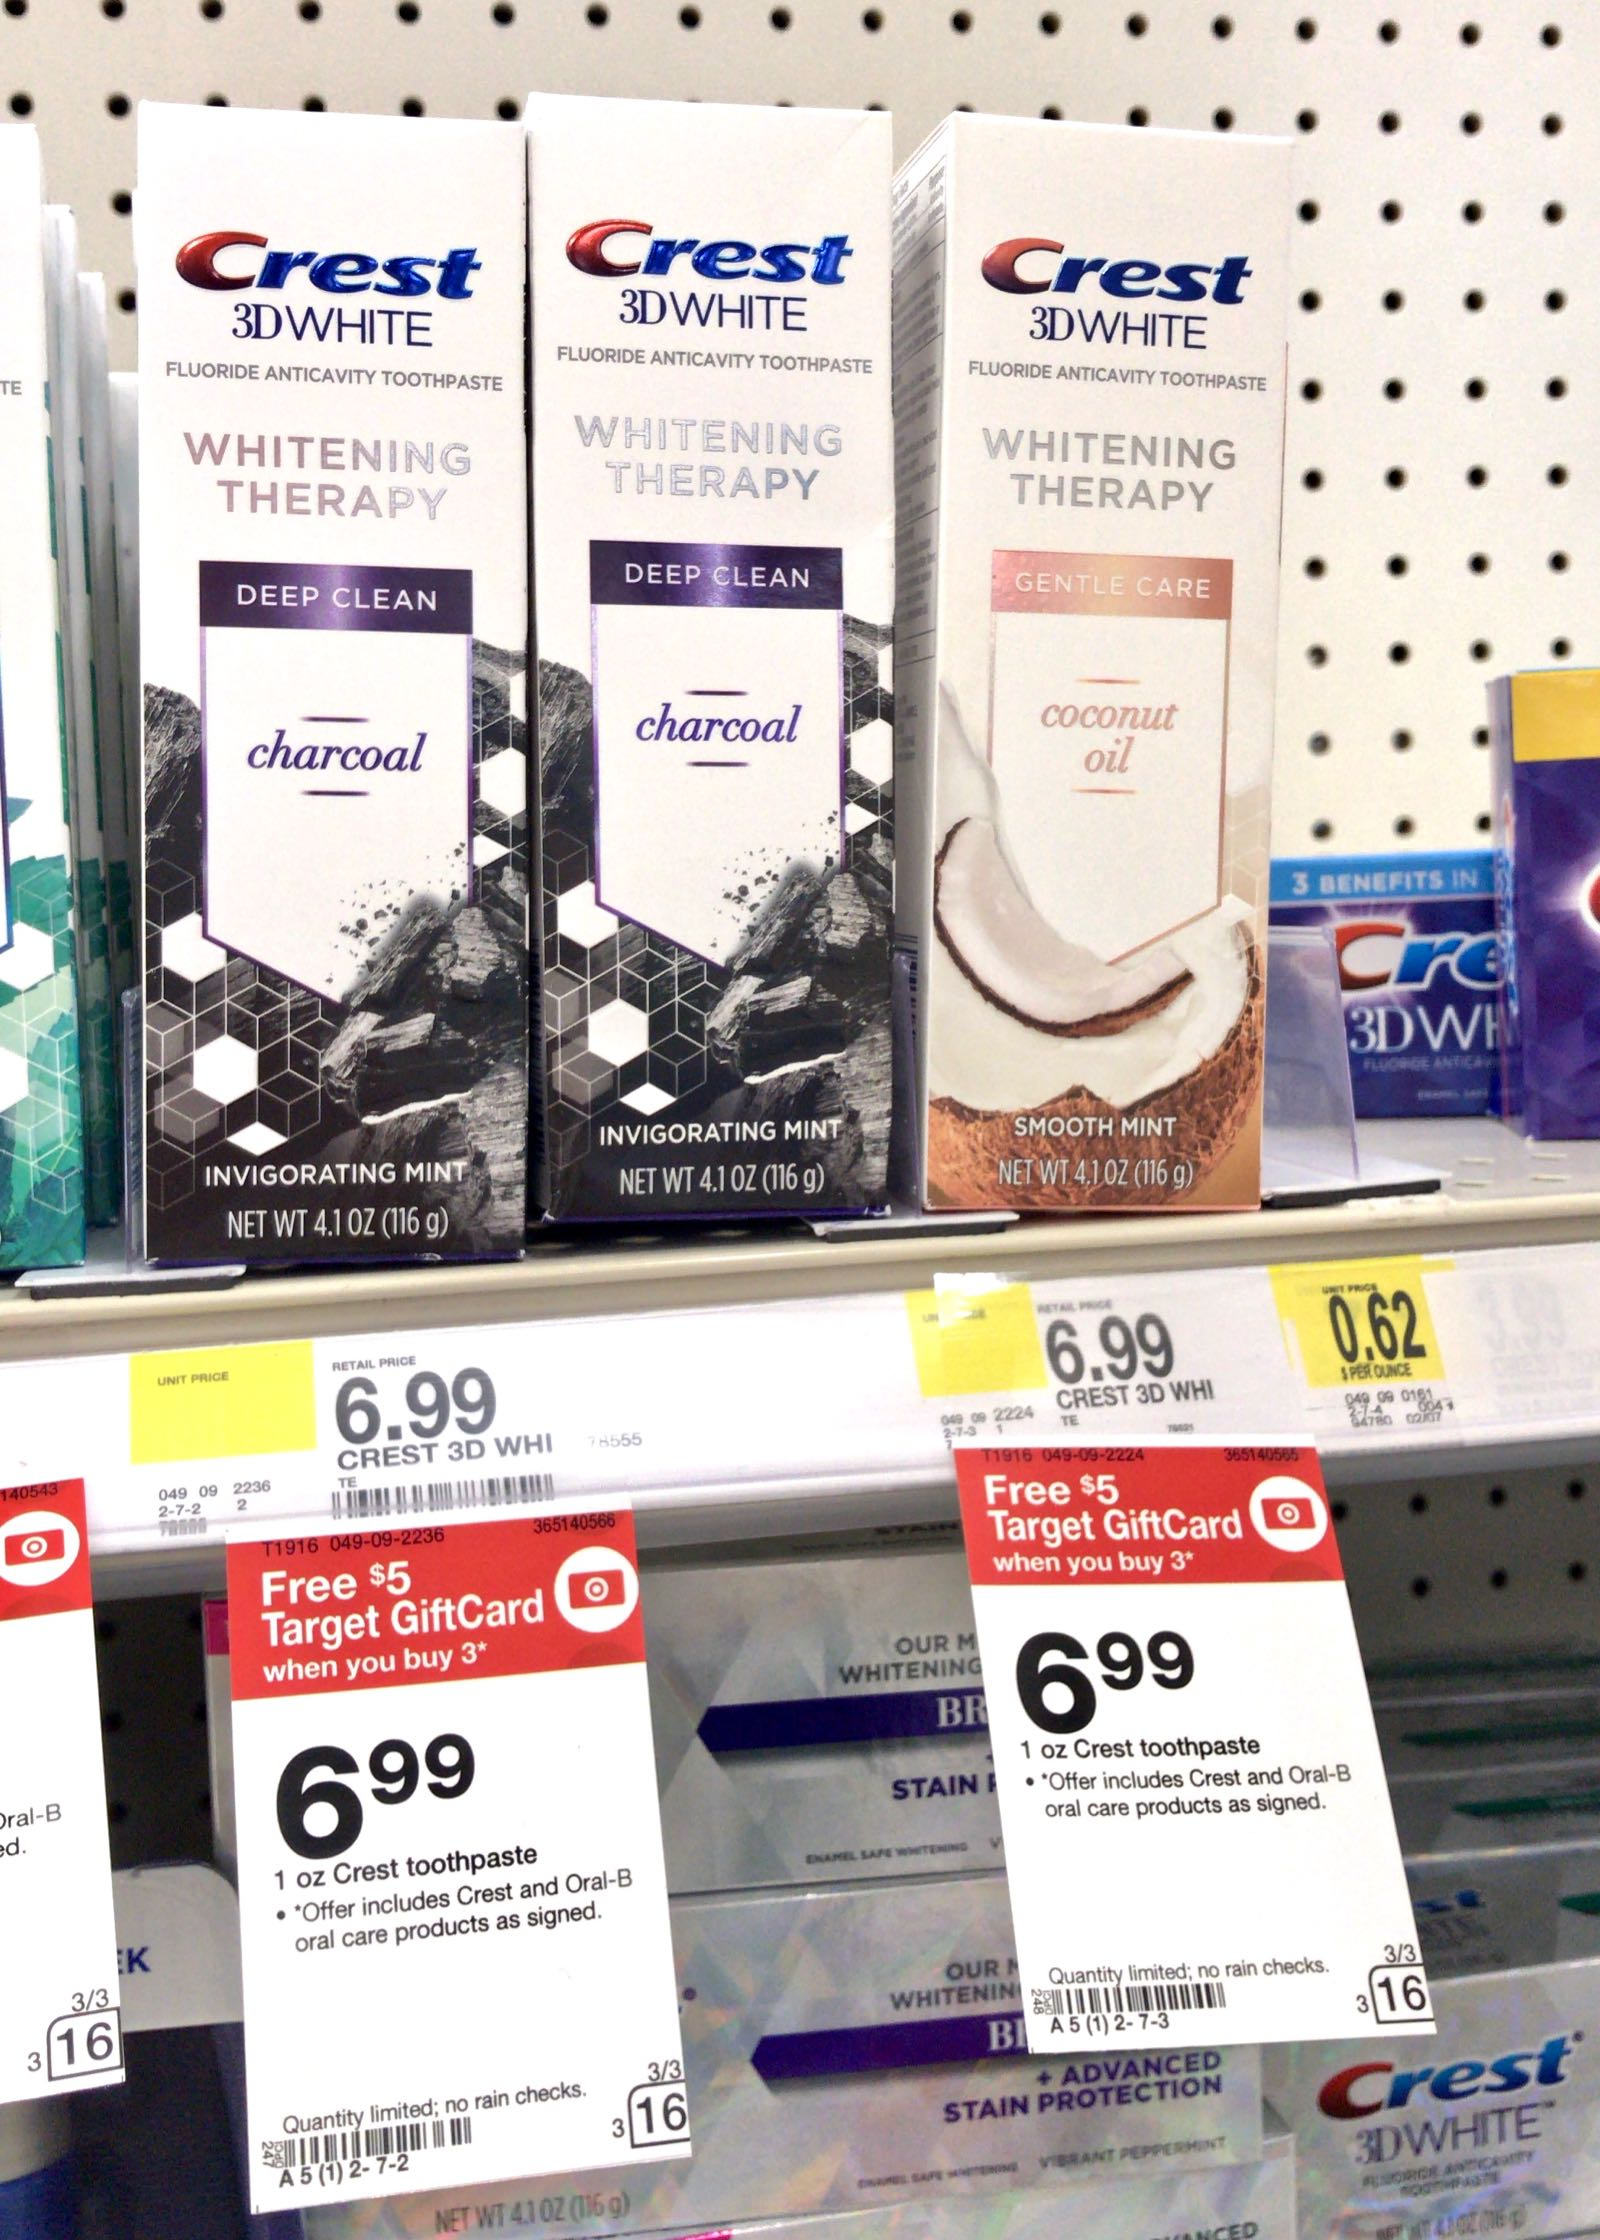 Save On Crest 3d White Whitening Therapy With Charcoal At Target